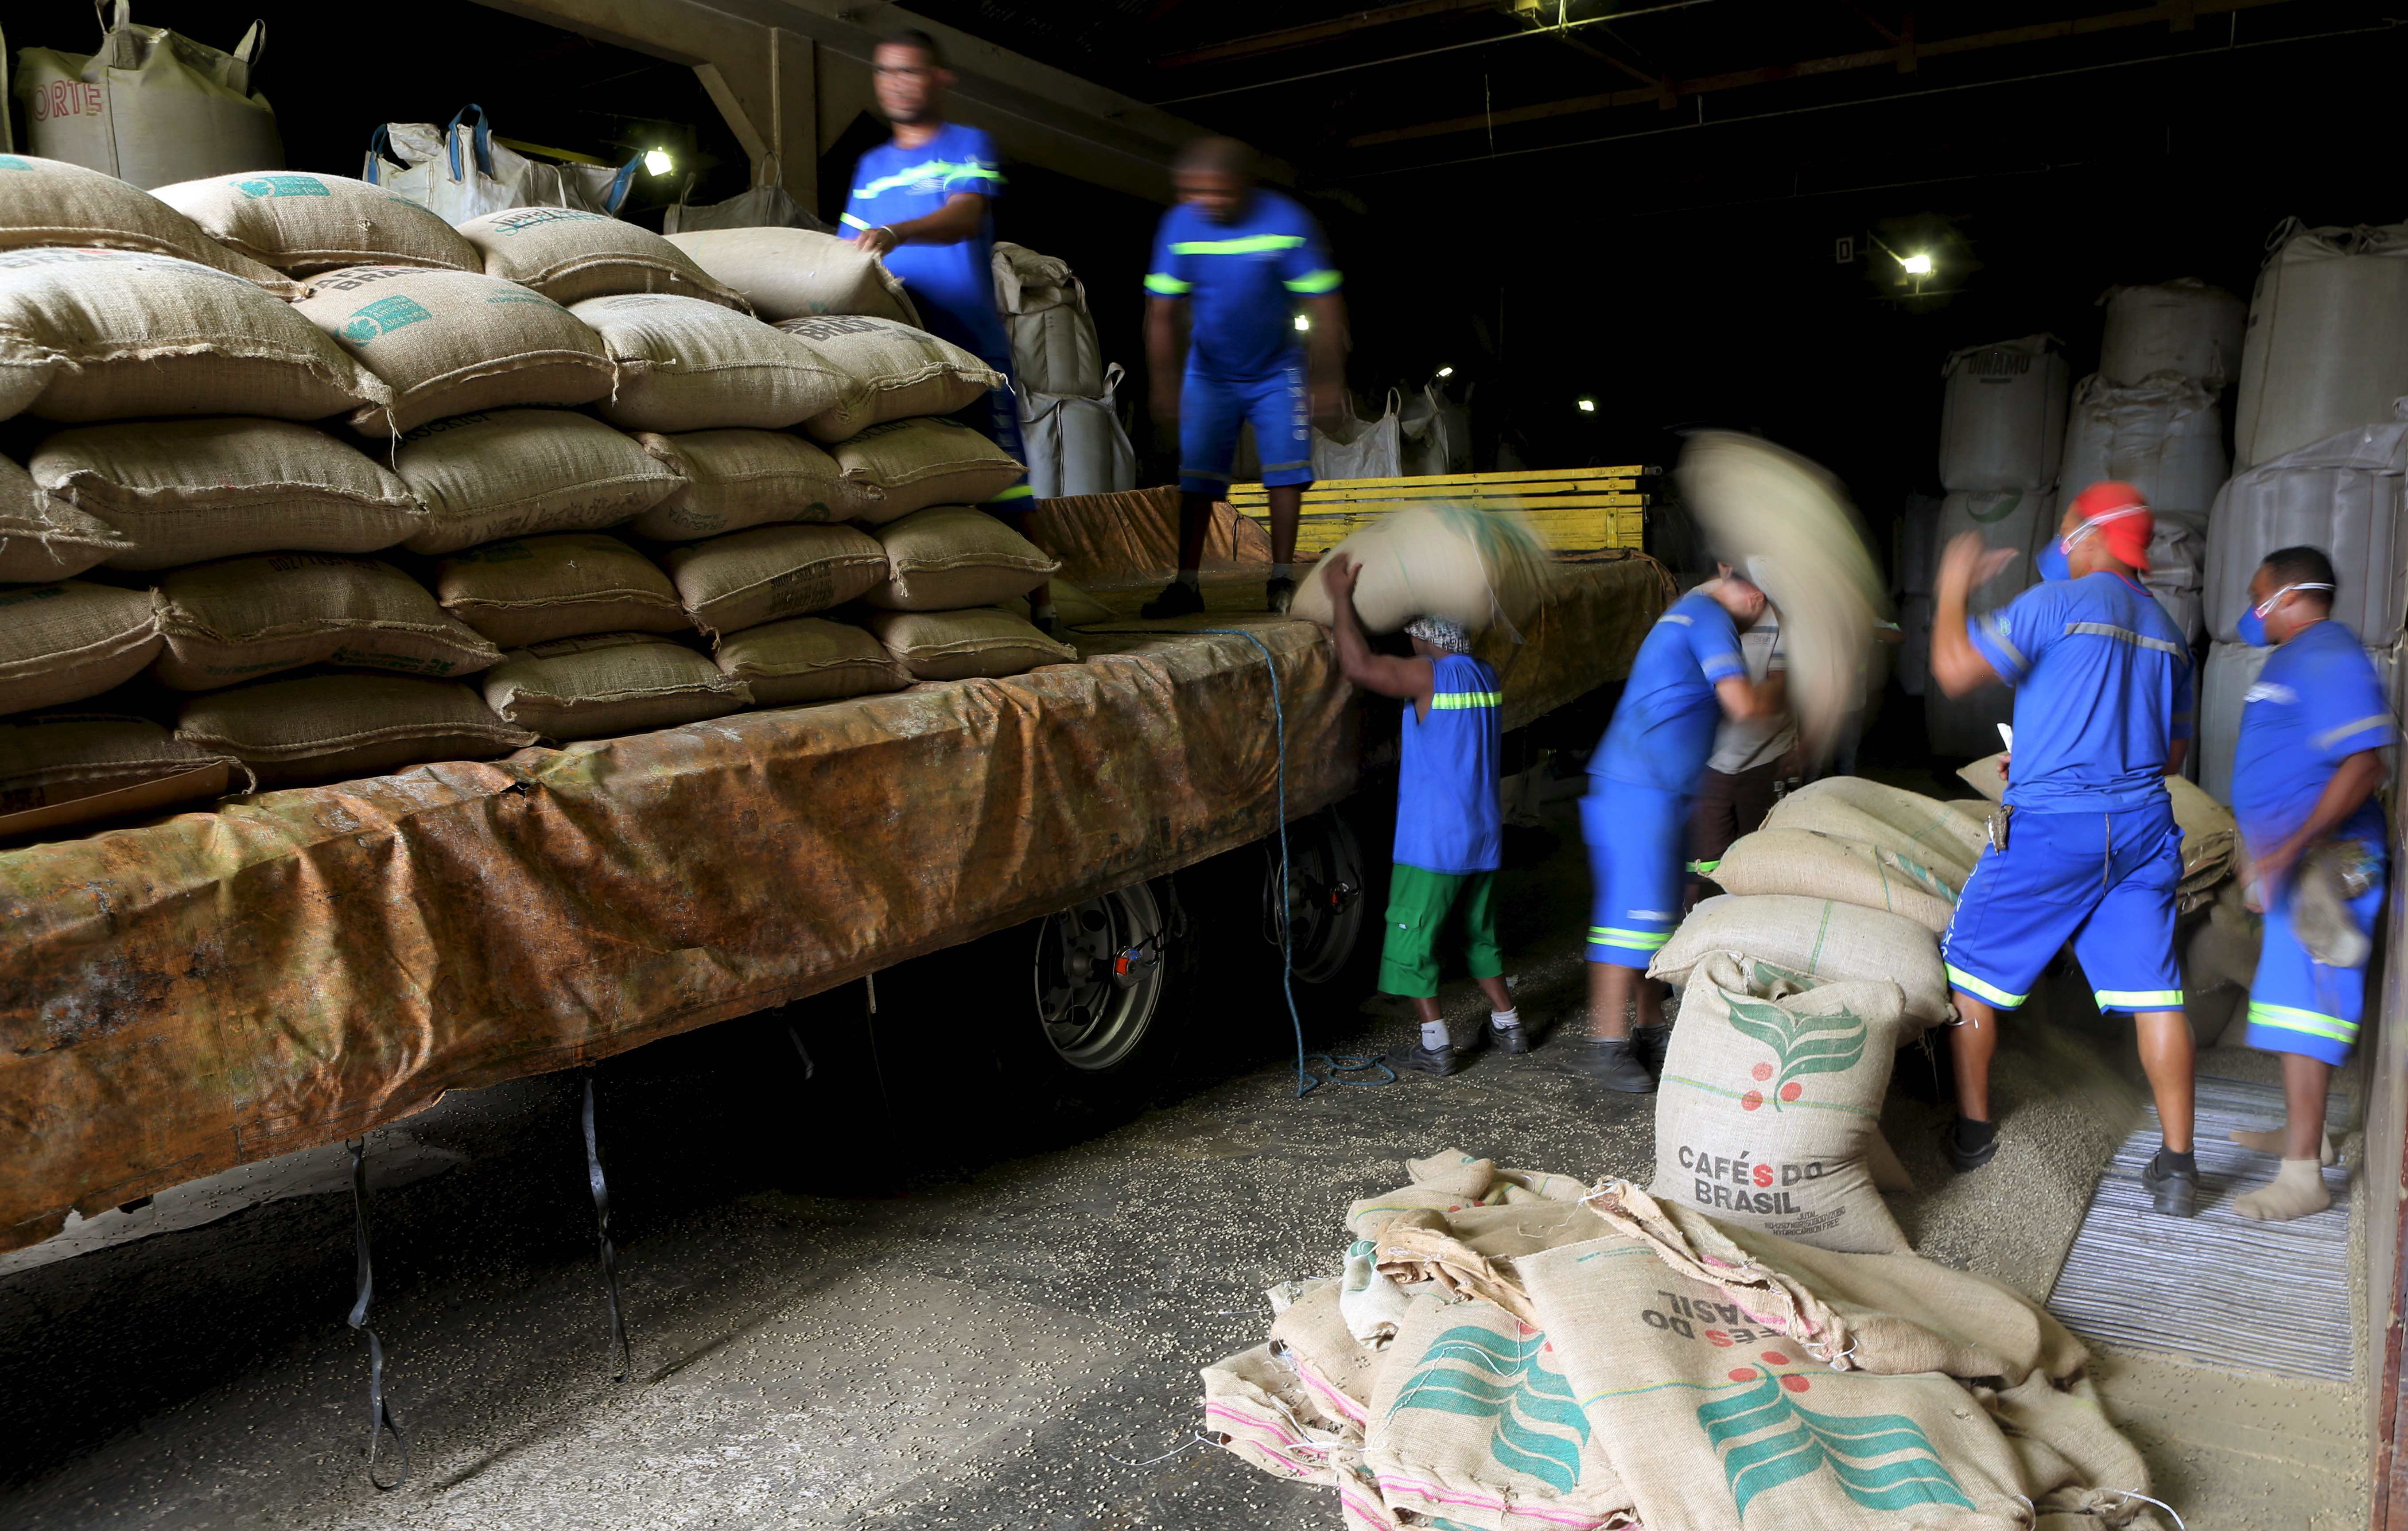 workers unload large canvass sacks filled with coffee beans